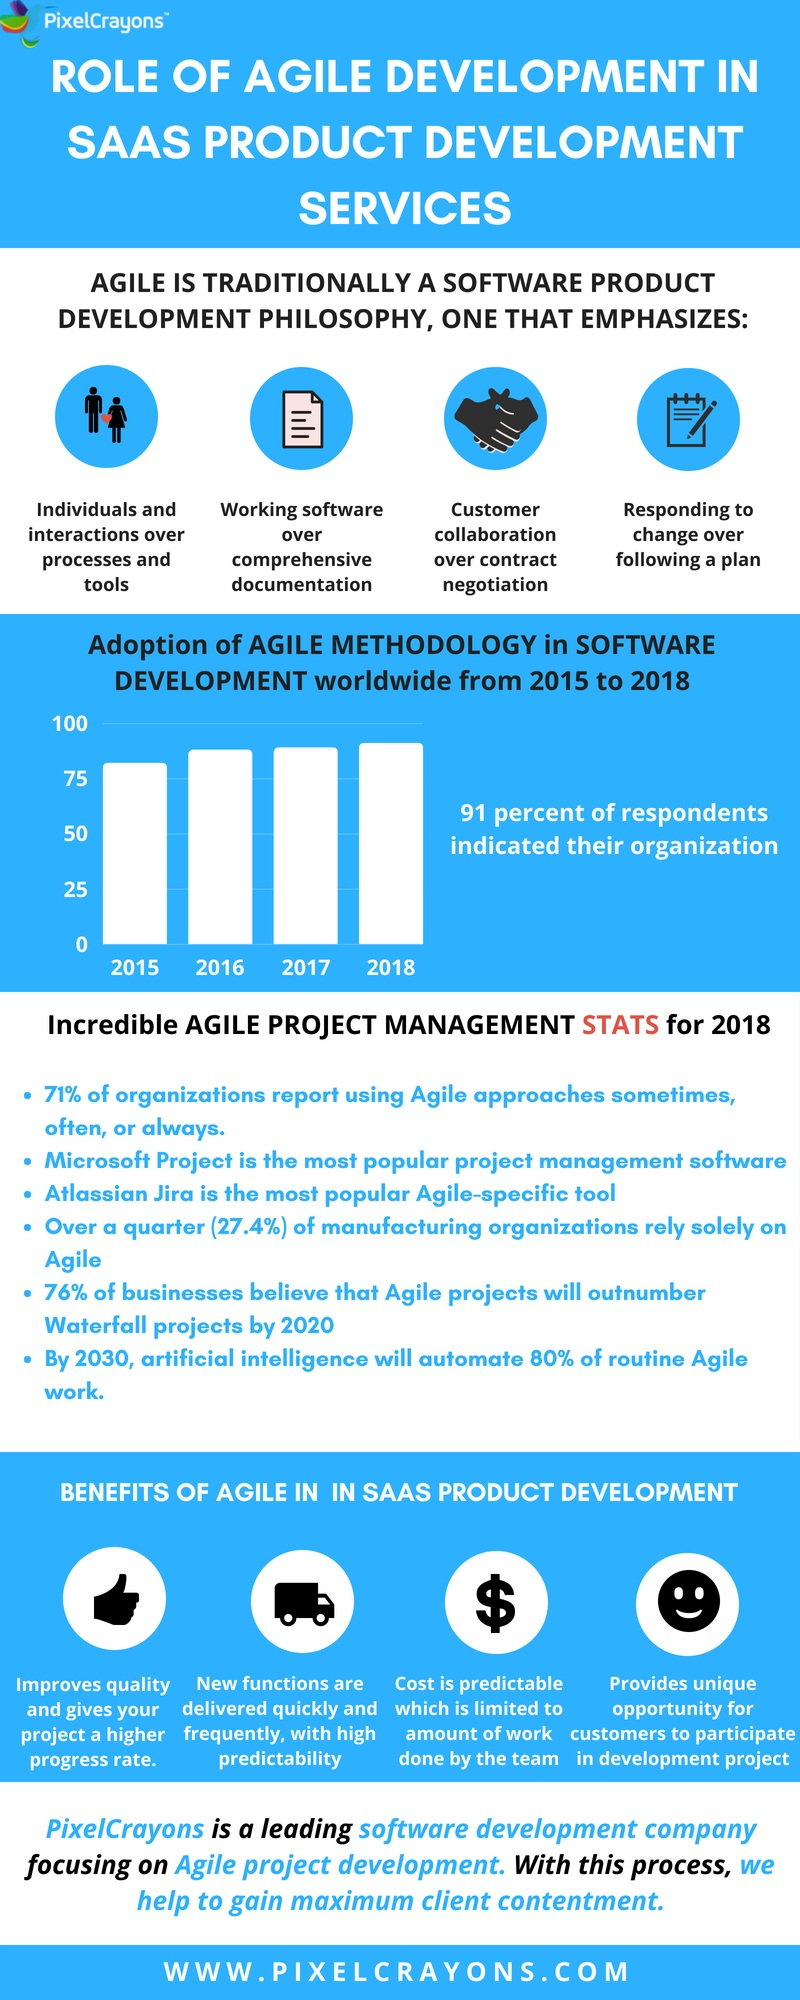 Role of Agile in Saas Product Development Services